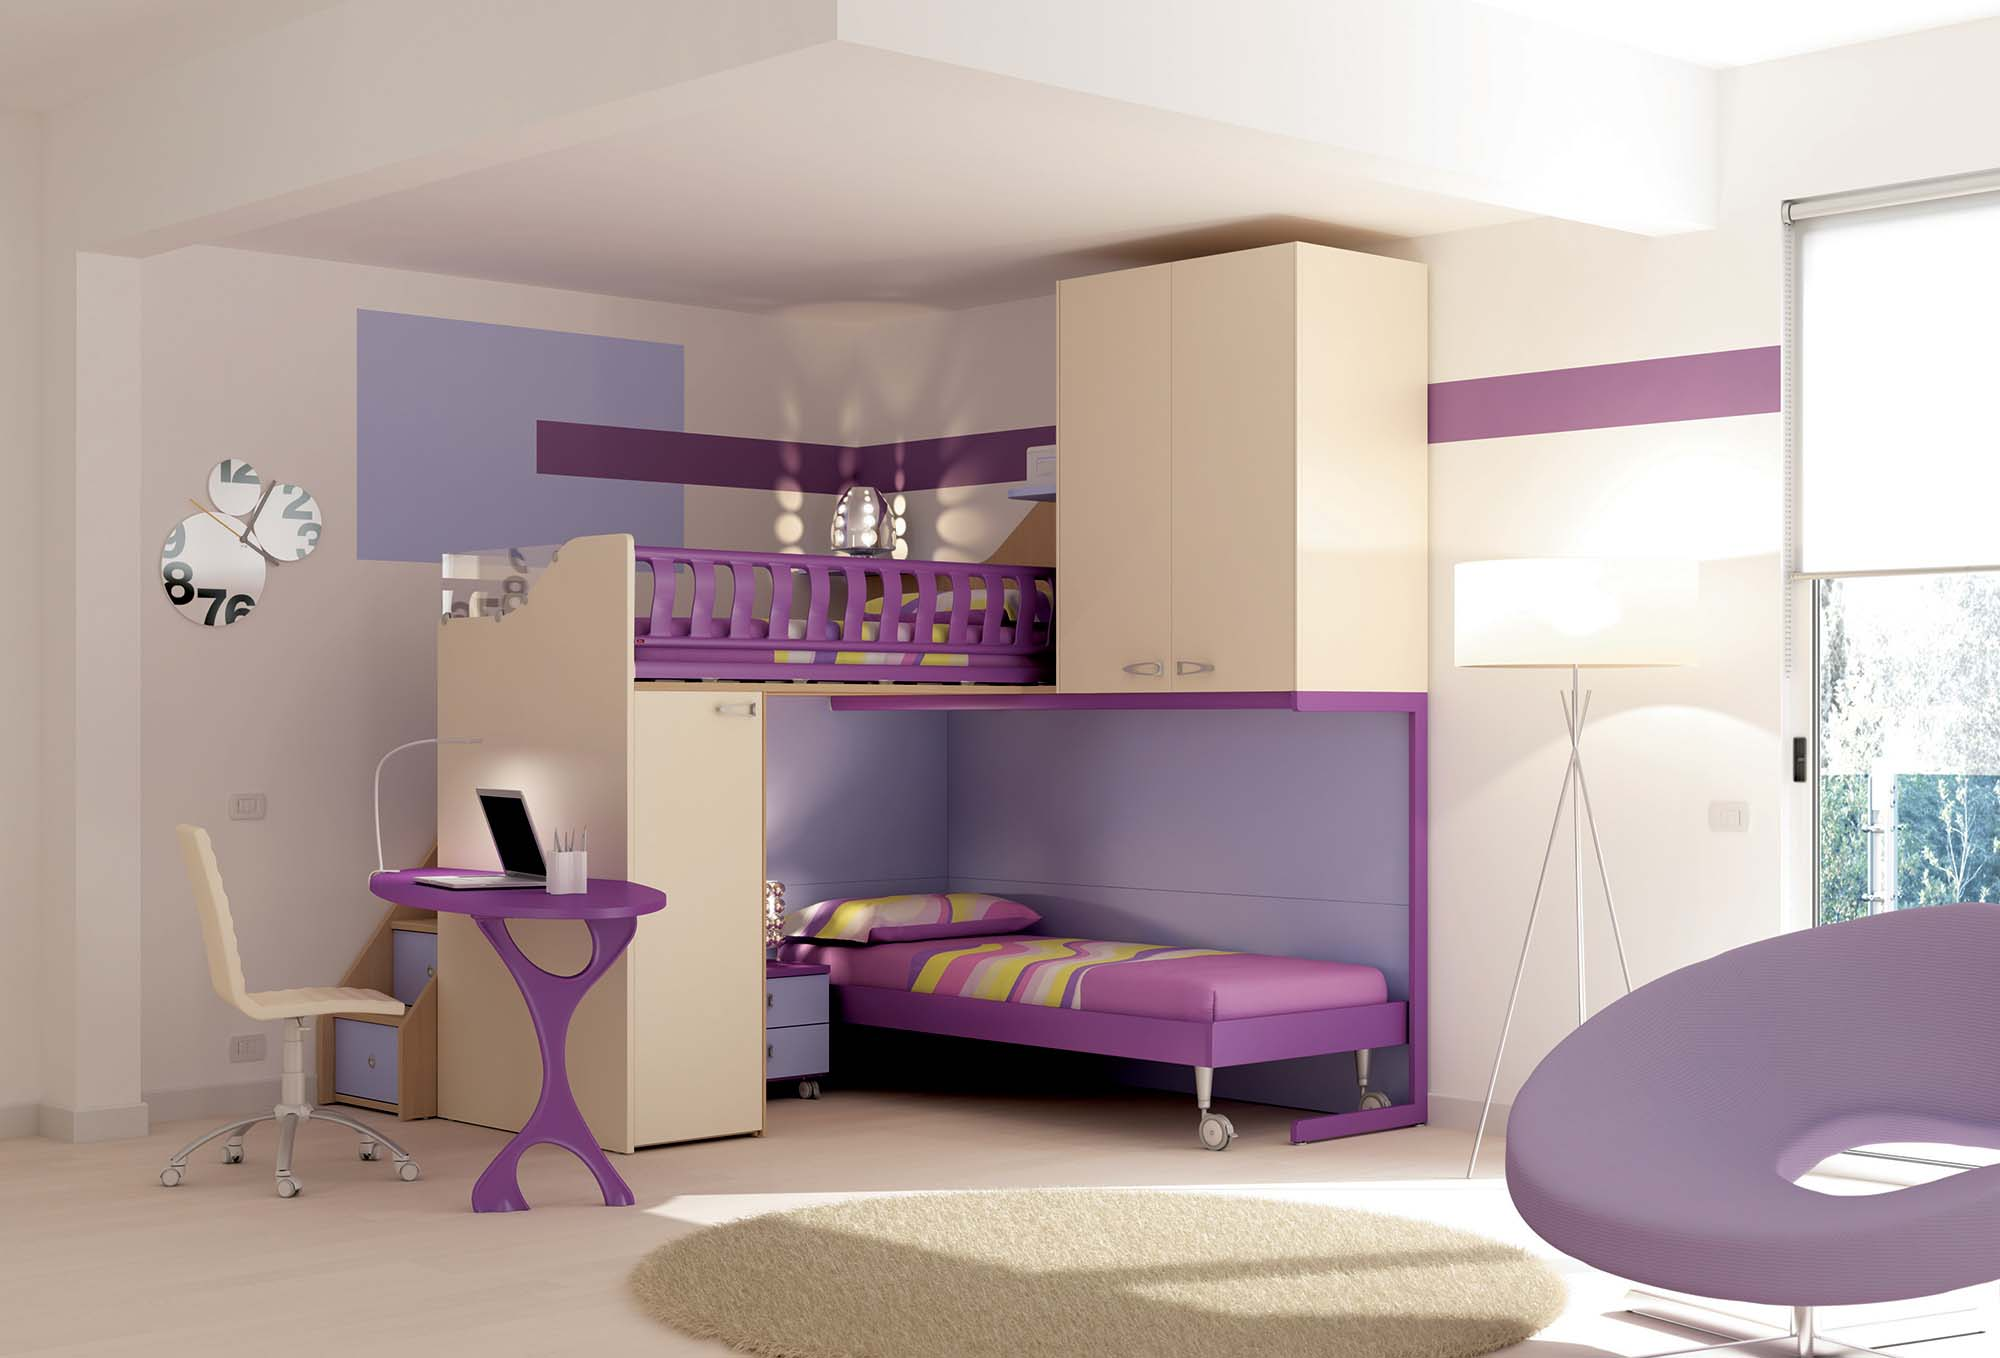 mezzanine chambre enfant lits cabanes chambre. Black Bedroom Furniture Sets. Home Design Ideas